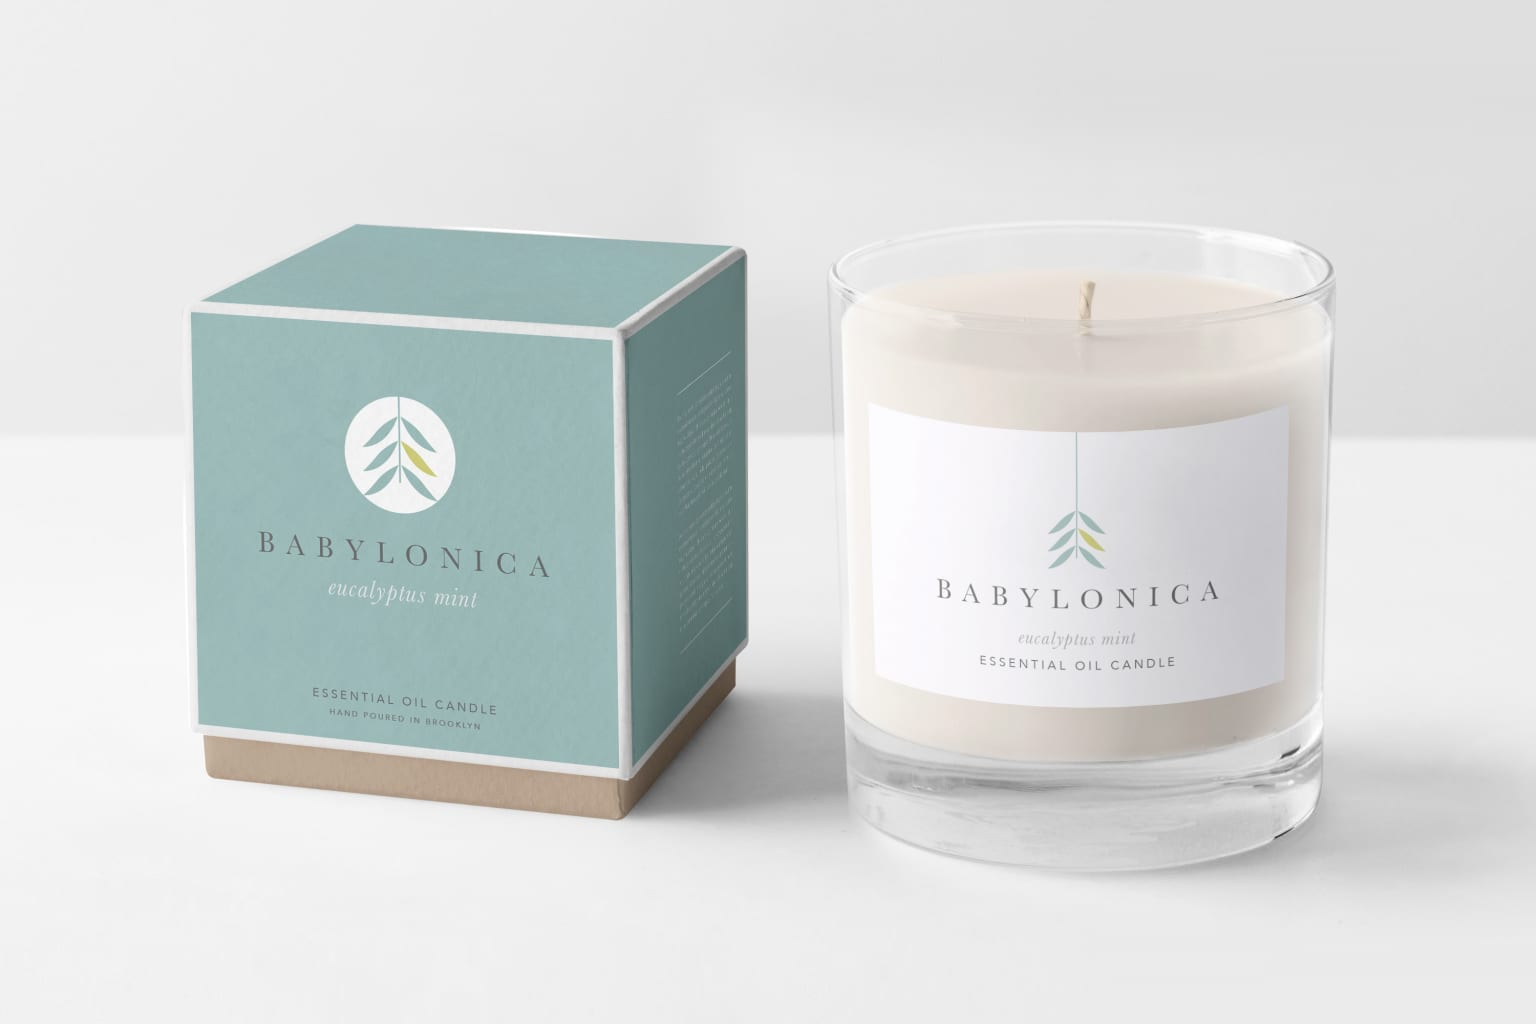 Babylonica Candle Brand & Packaging